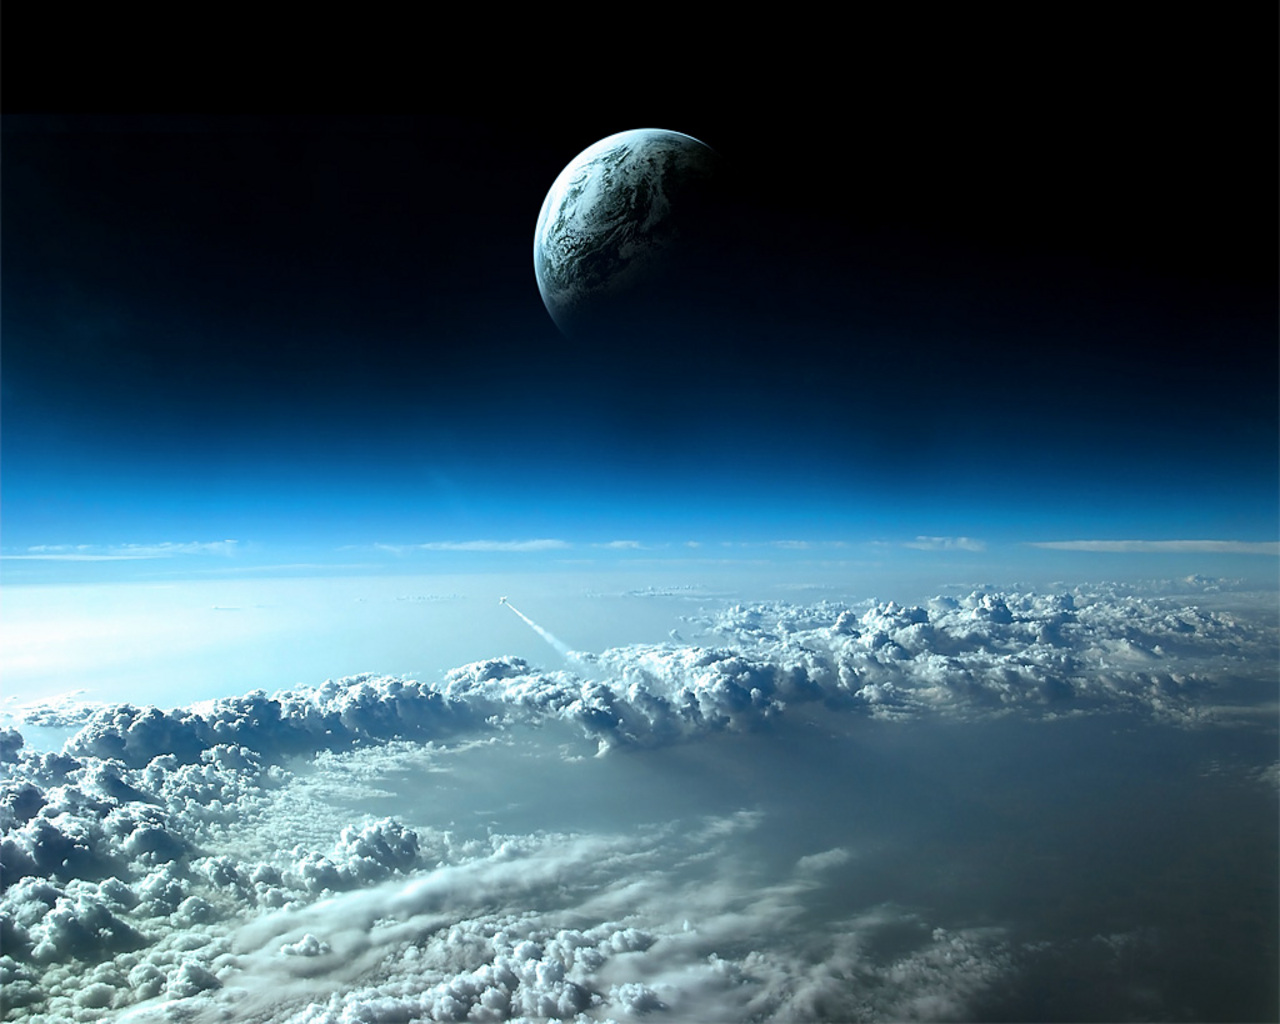 3D Space Scene Res: 1280x1024 / Size:274kb. Views: 477044